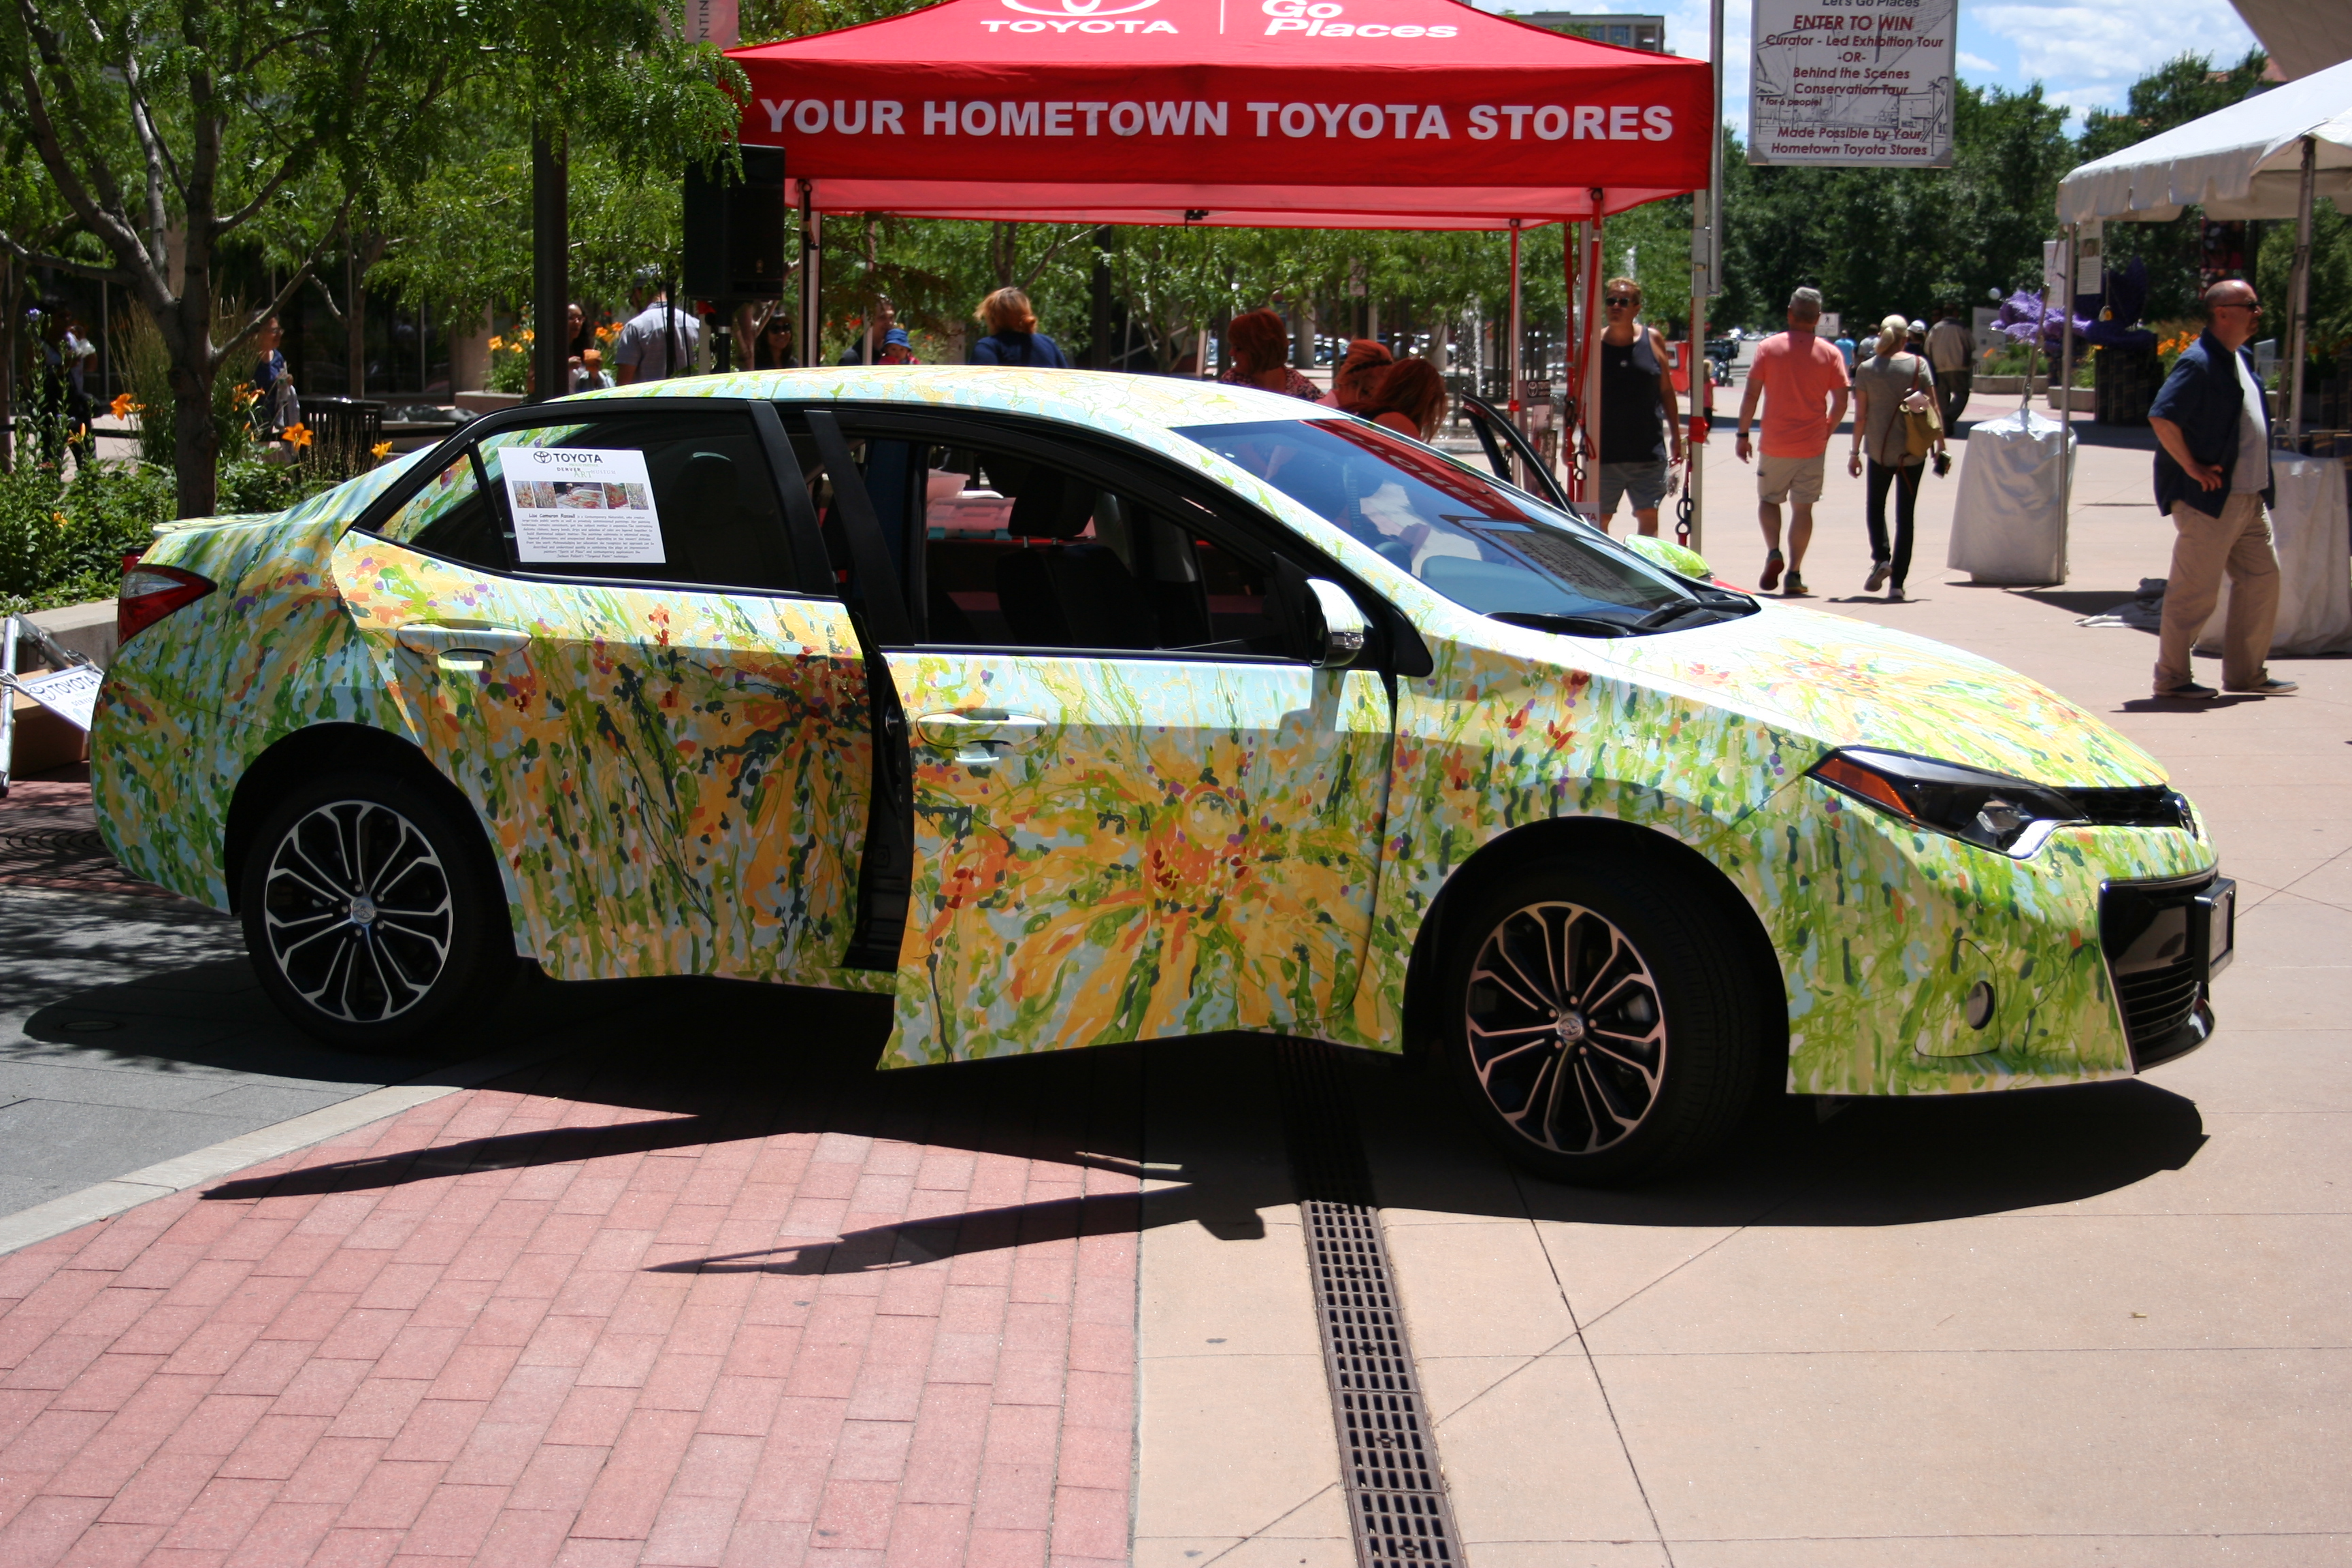 Live painting demonstration for the denver art museum and 6 hometown toyota stores